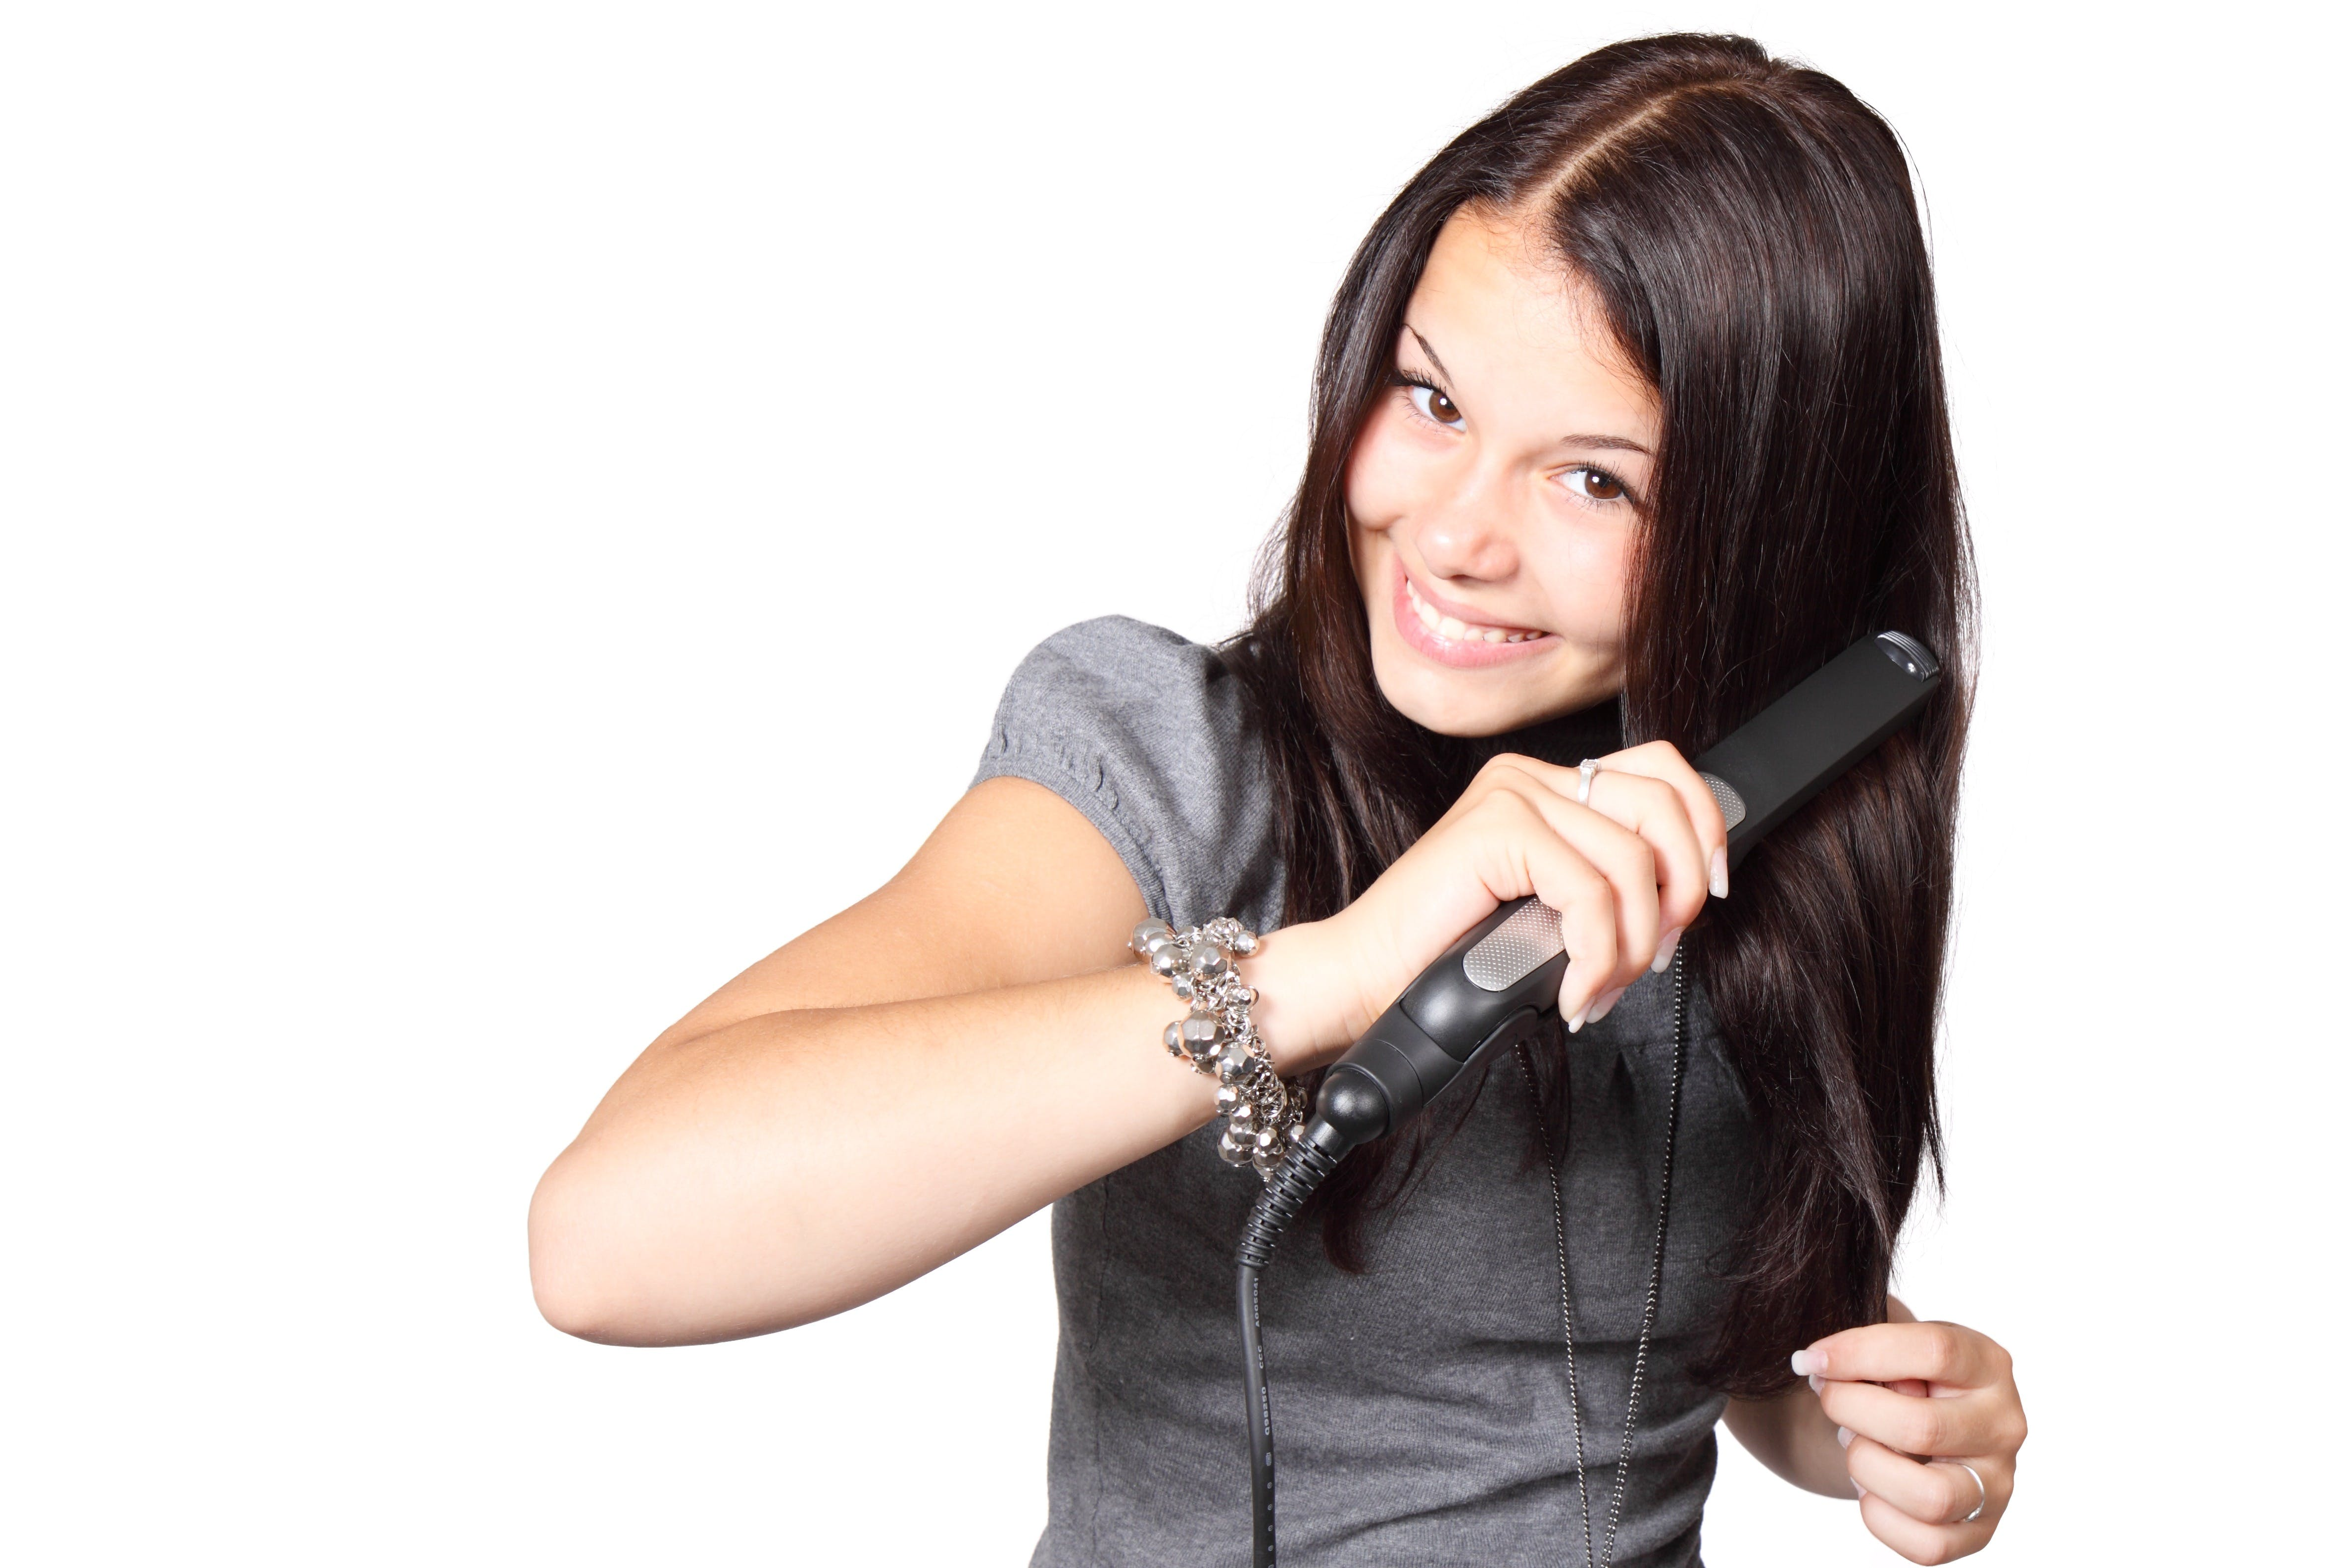 Woman in Gray Shirt Straightening Her Hair